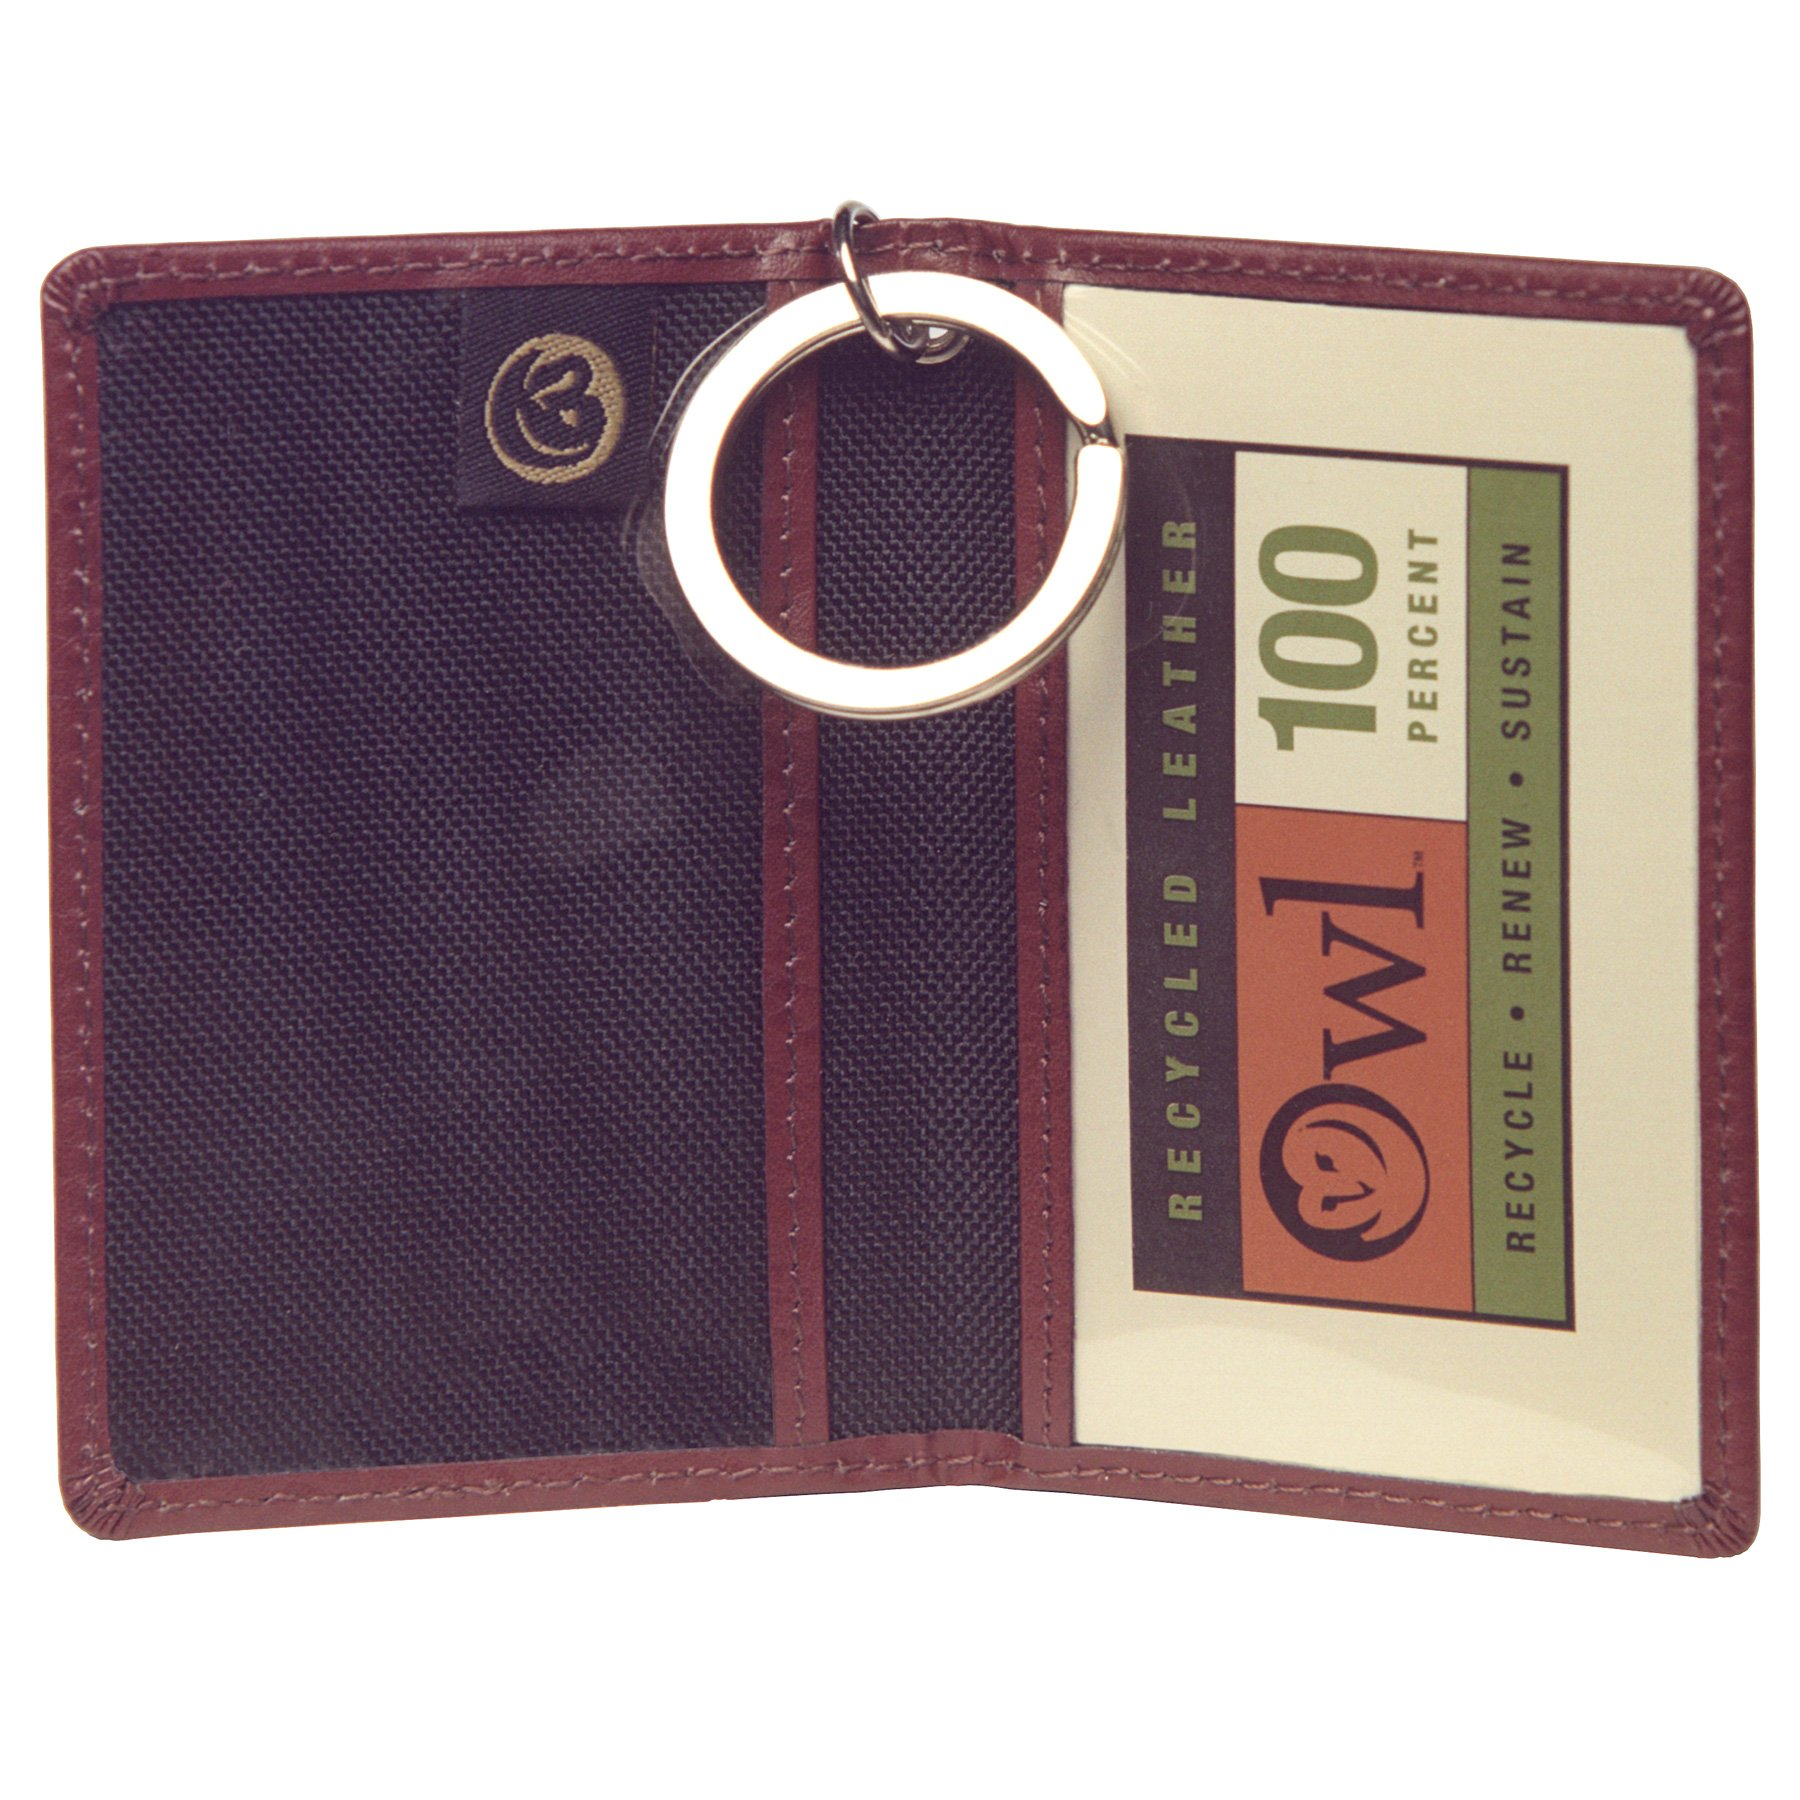 OWL Simple BROWN Thin Slim Keychain Leather Credit Card ID Holder Small Wallet for Men + Women